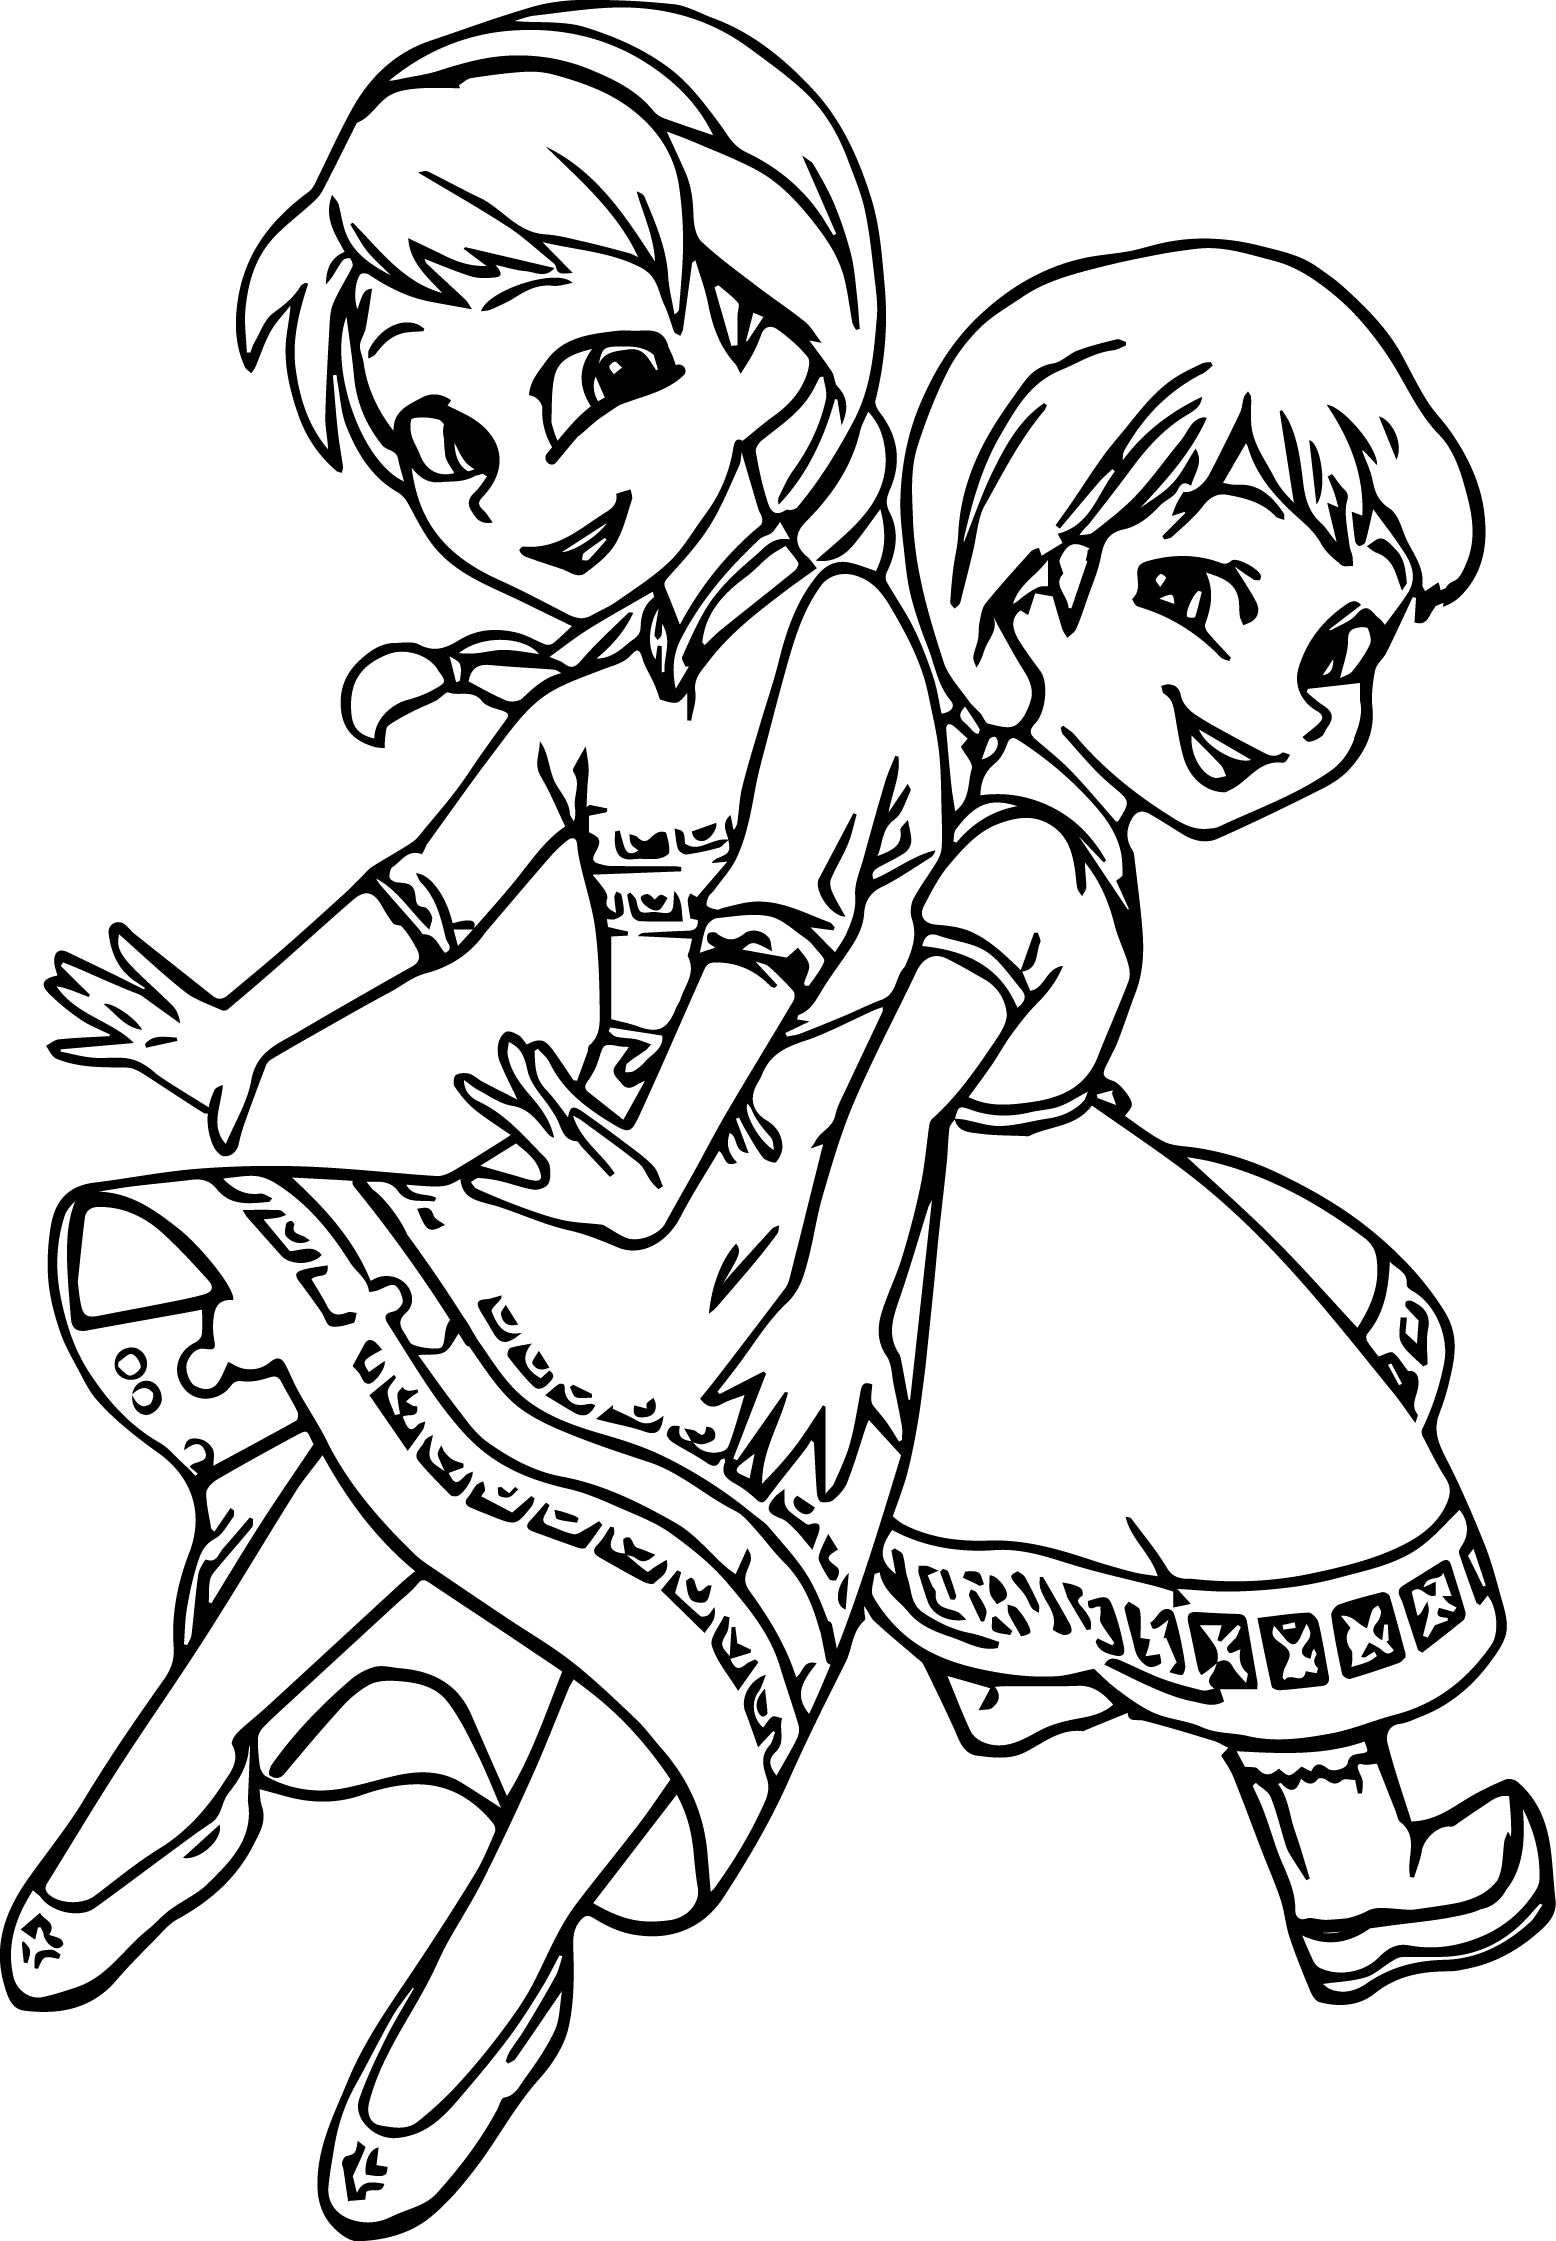 1556x2241 Elsa Coloring Pages To Print, Search Results For Elsa And Anna